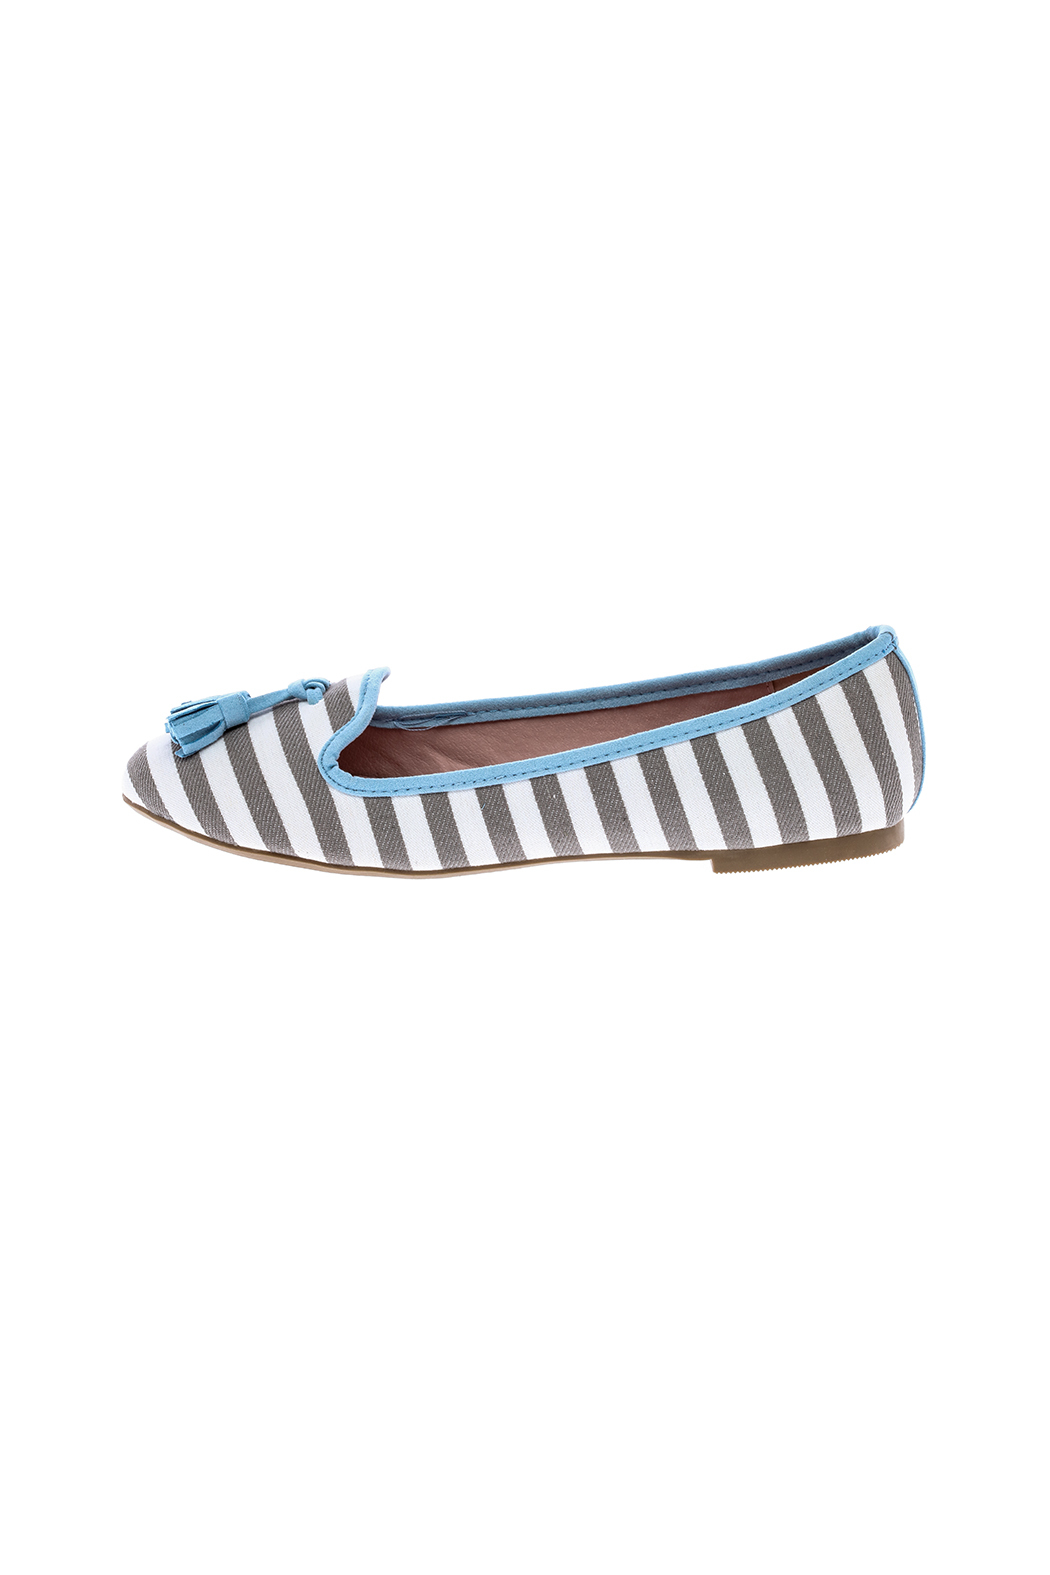 gc shoes Dorothy Striped Flat - Front Cropped Image